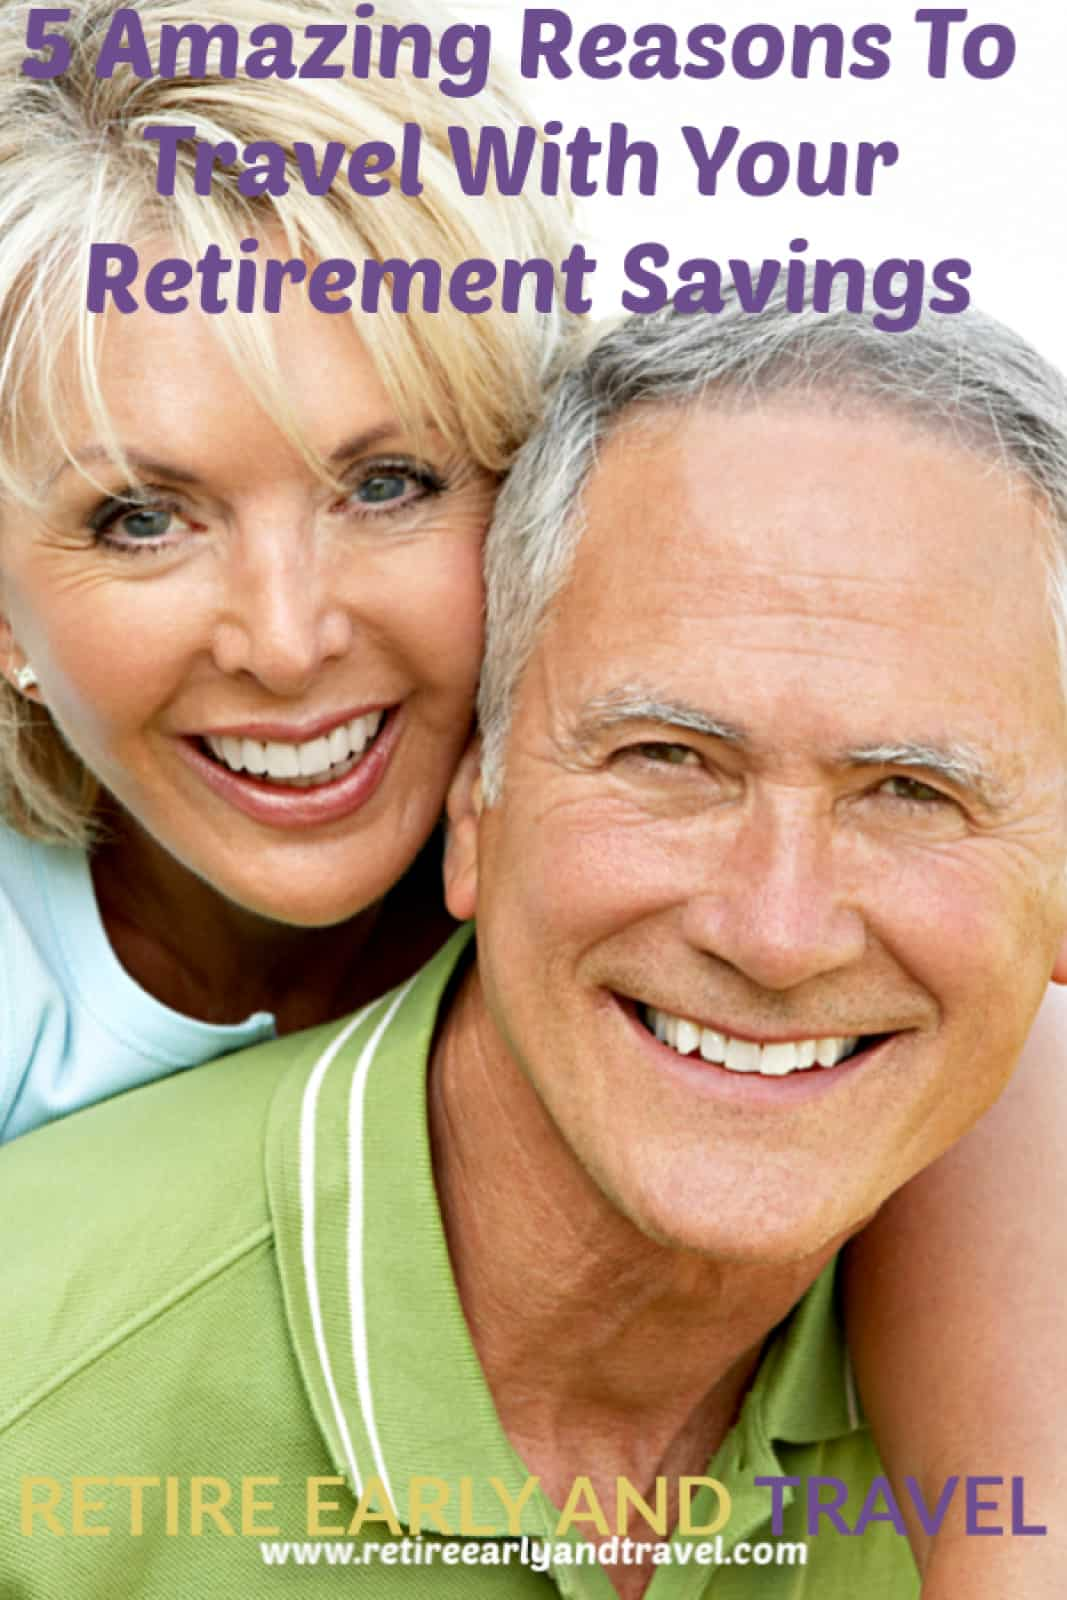 Retirement savings pin